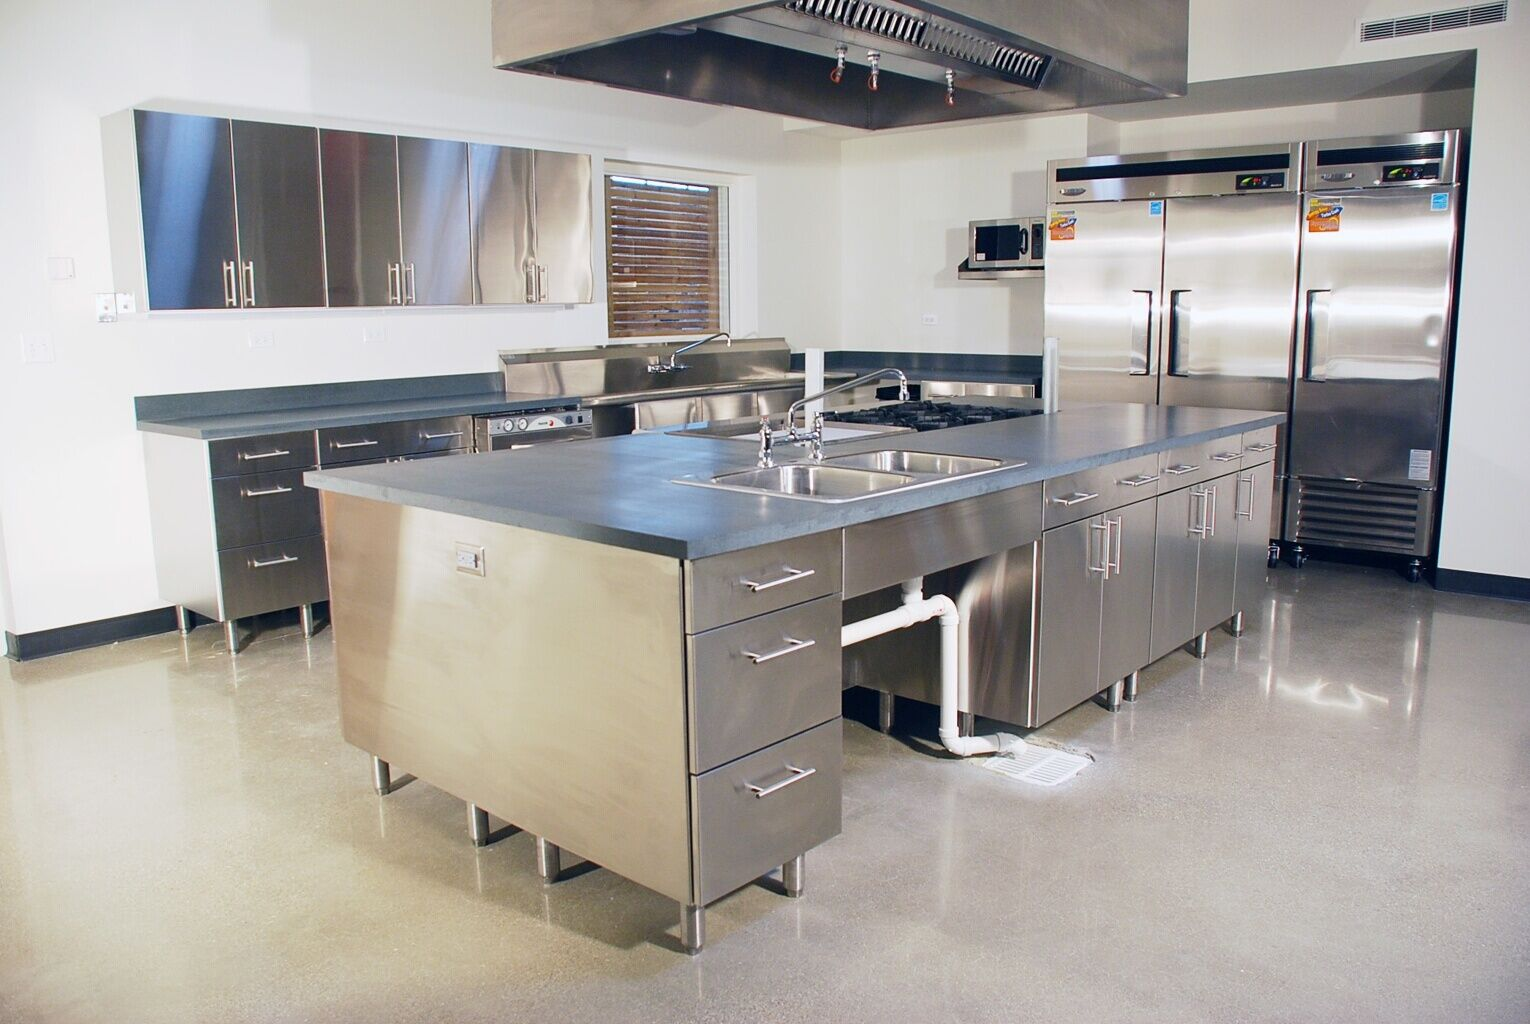 Stainless Steel Kitchen Hand Made Stainless Steel Kitchen By Mica Shop Custommadecom